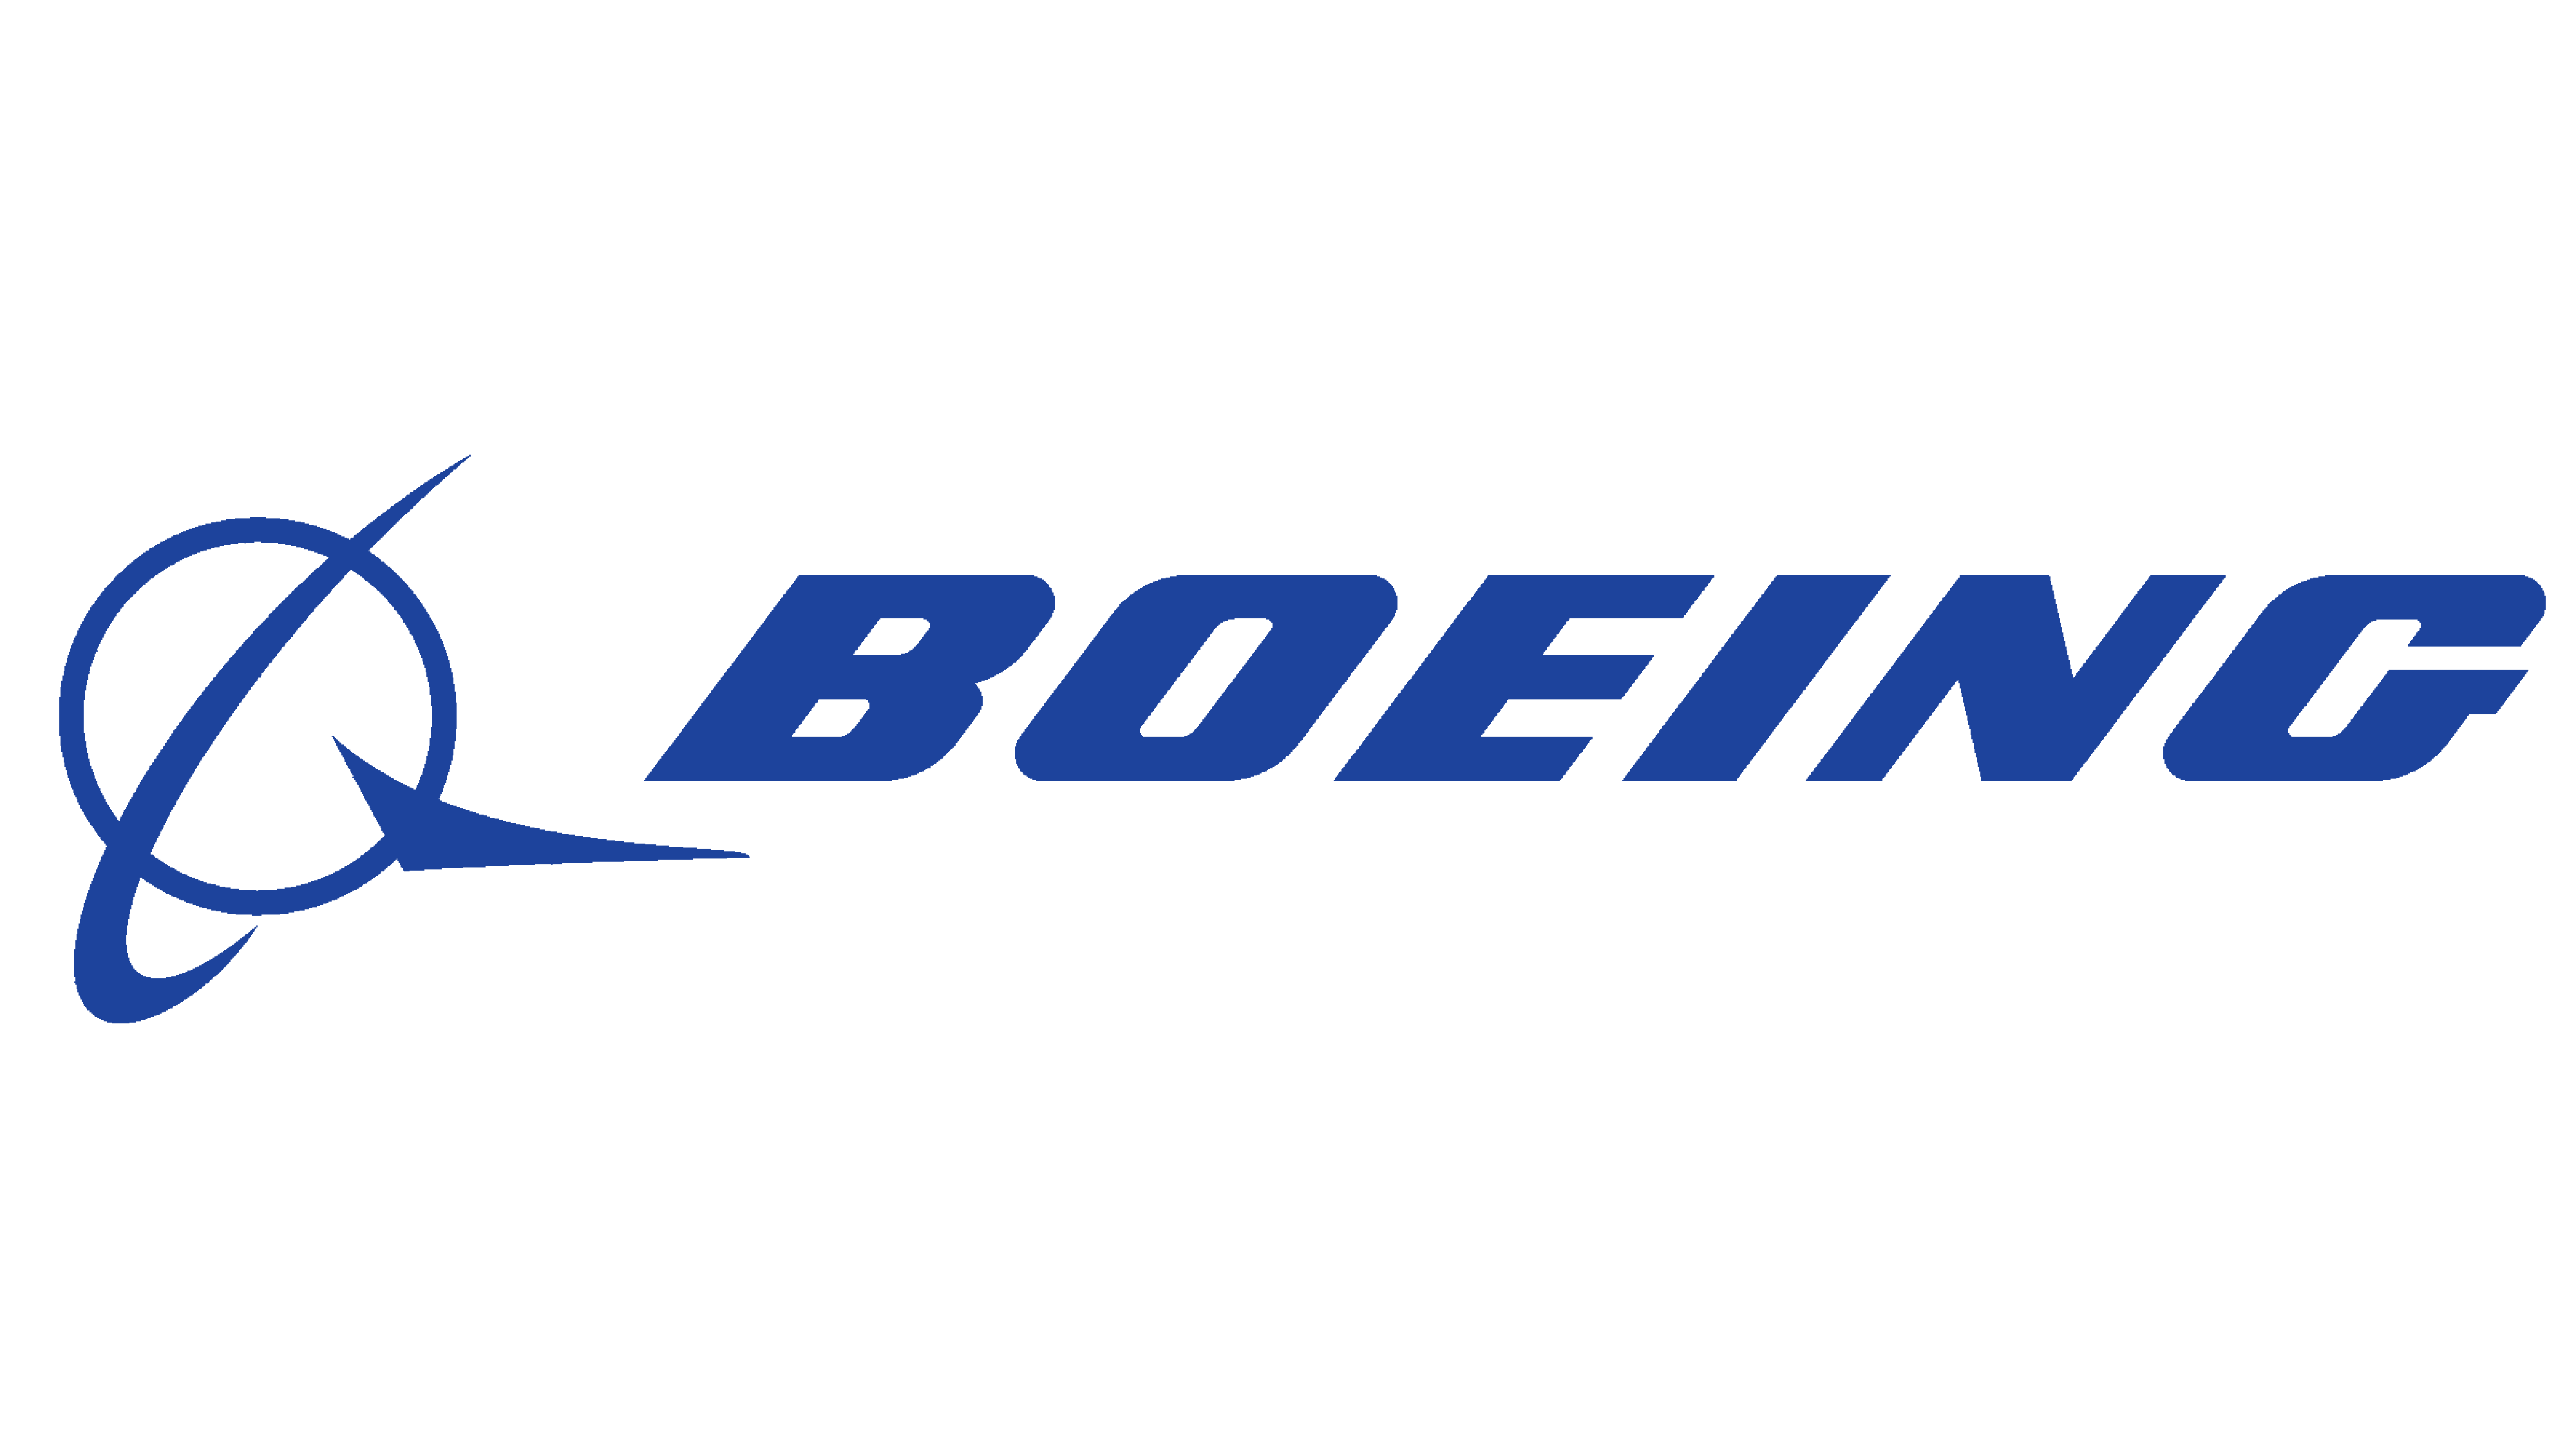 Boeing Commercial Airplanes Logo Logo